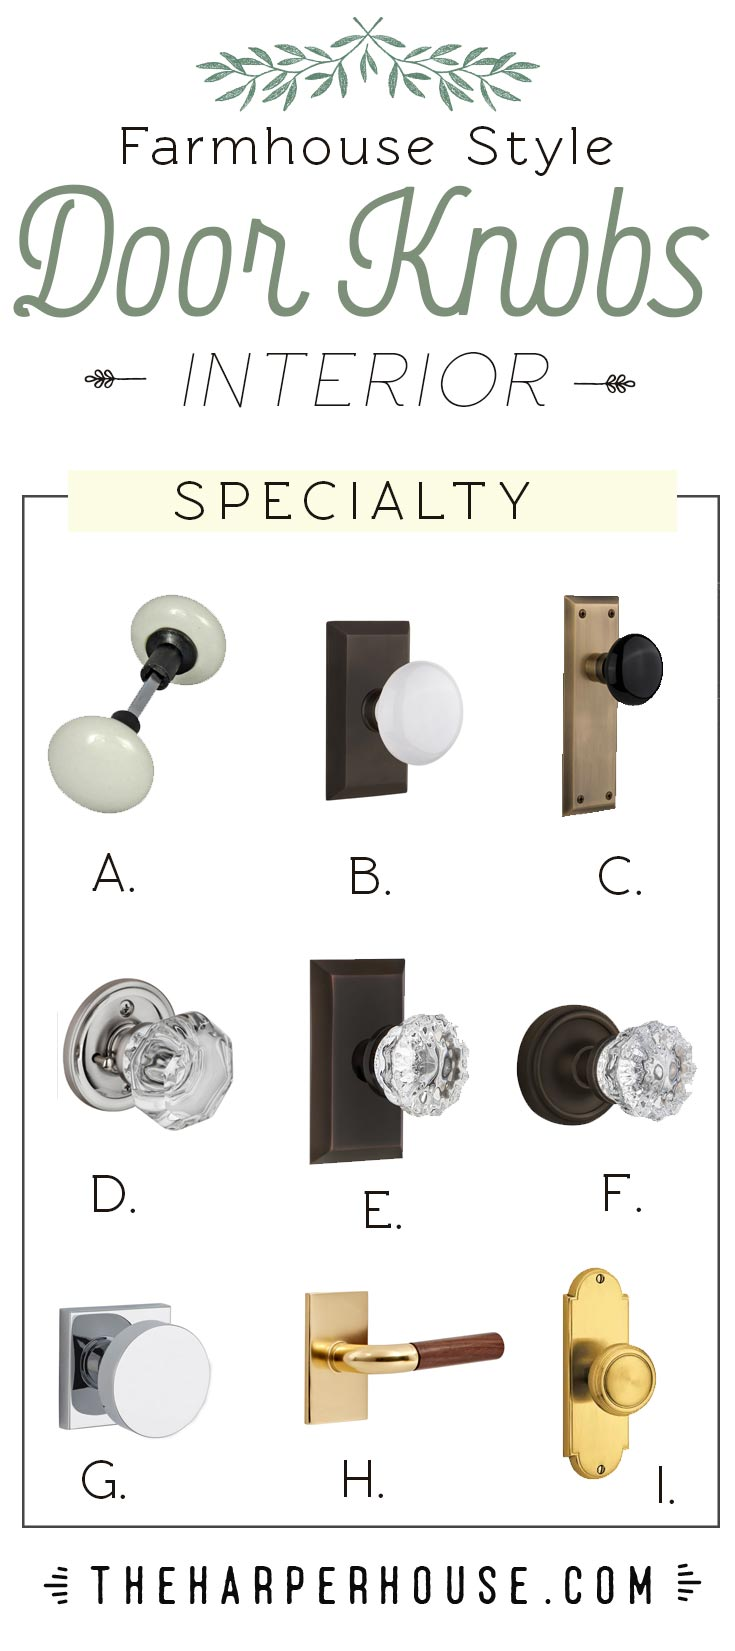 Roundup Of Glass, Crystal, Porcelain, And Brass Door Knobs To Help You Get